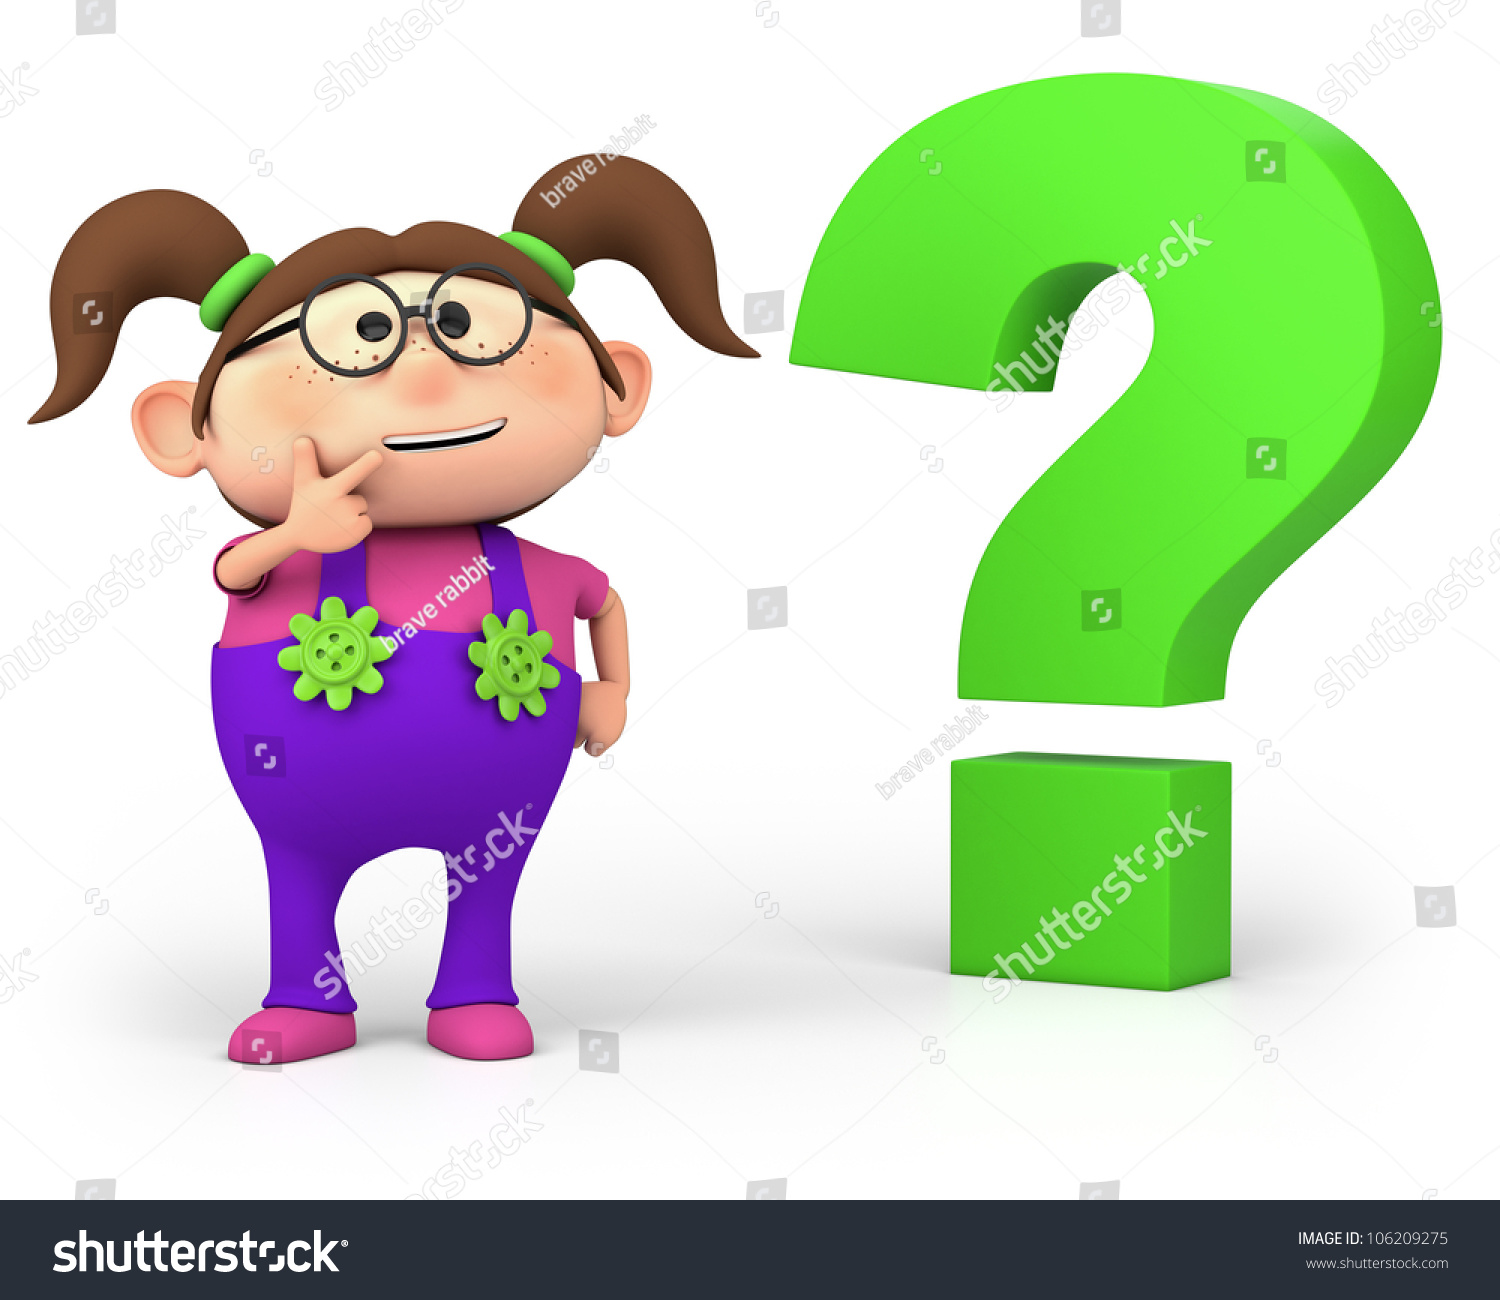 Pics photos clip art cartoon scientist with question mark stock - Cute Little Cartoon Girl With Question Mark High Quality 3d Illustration